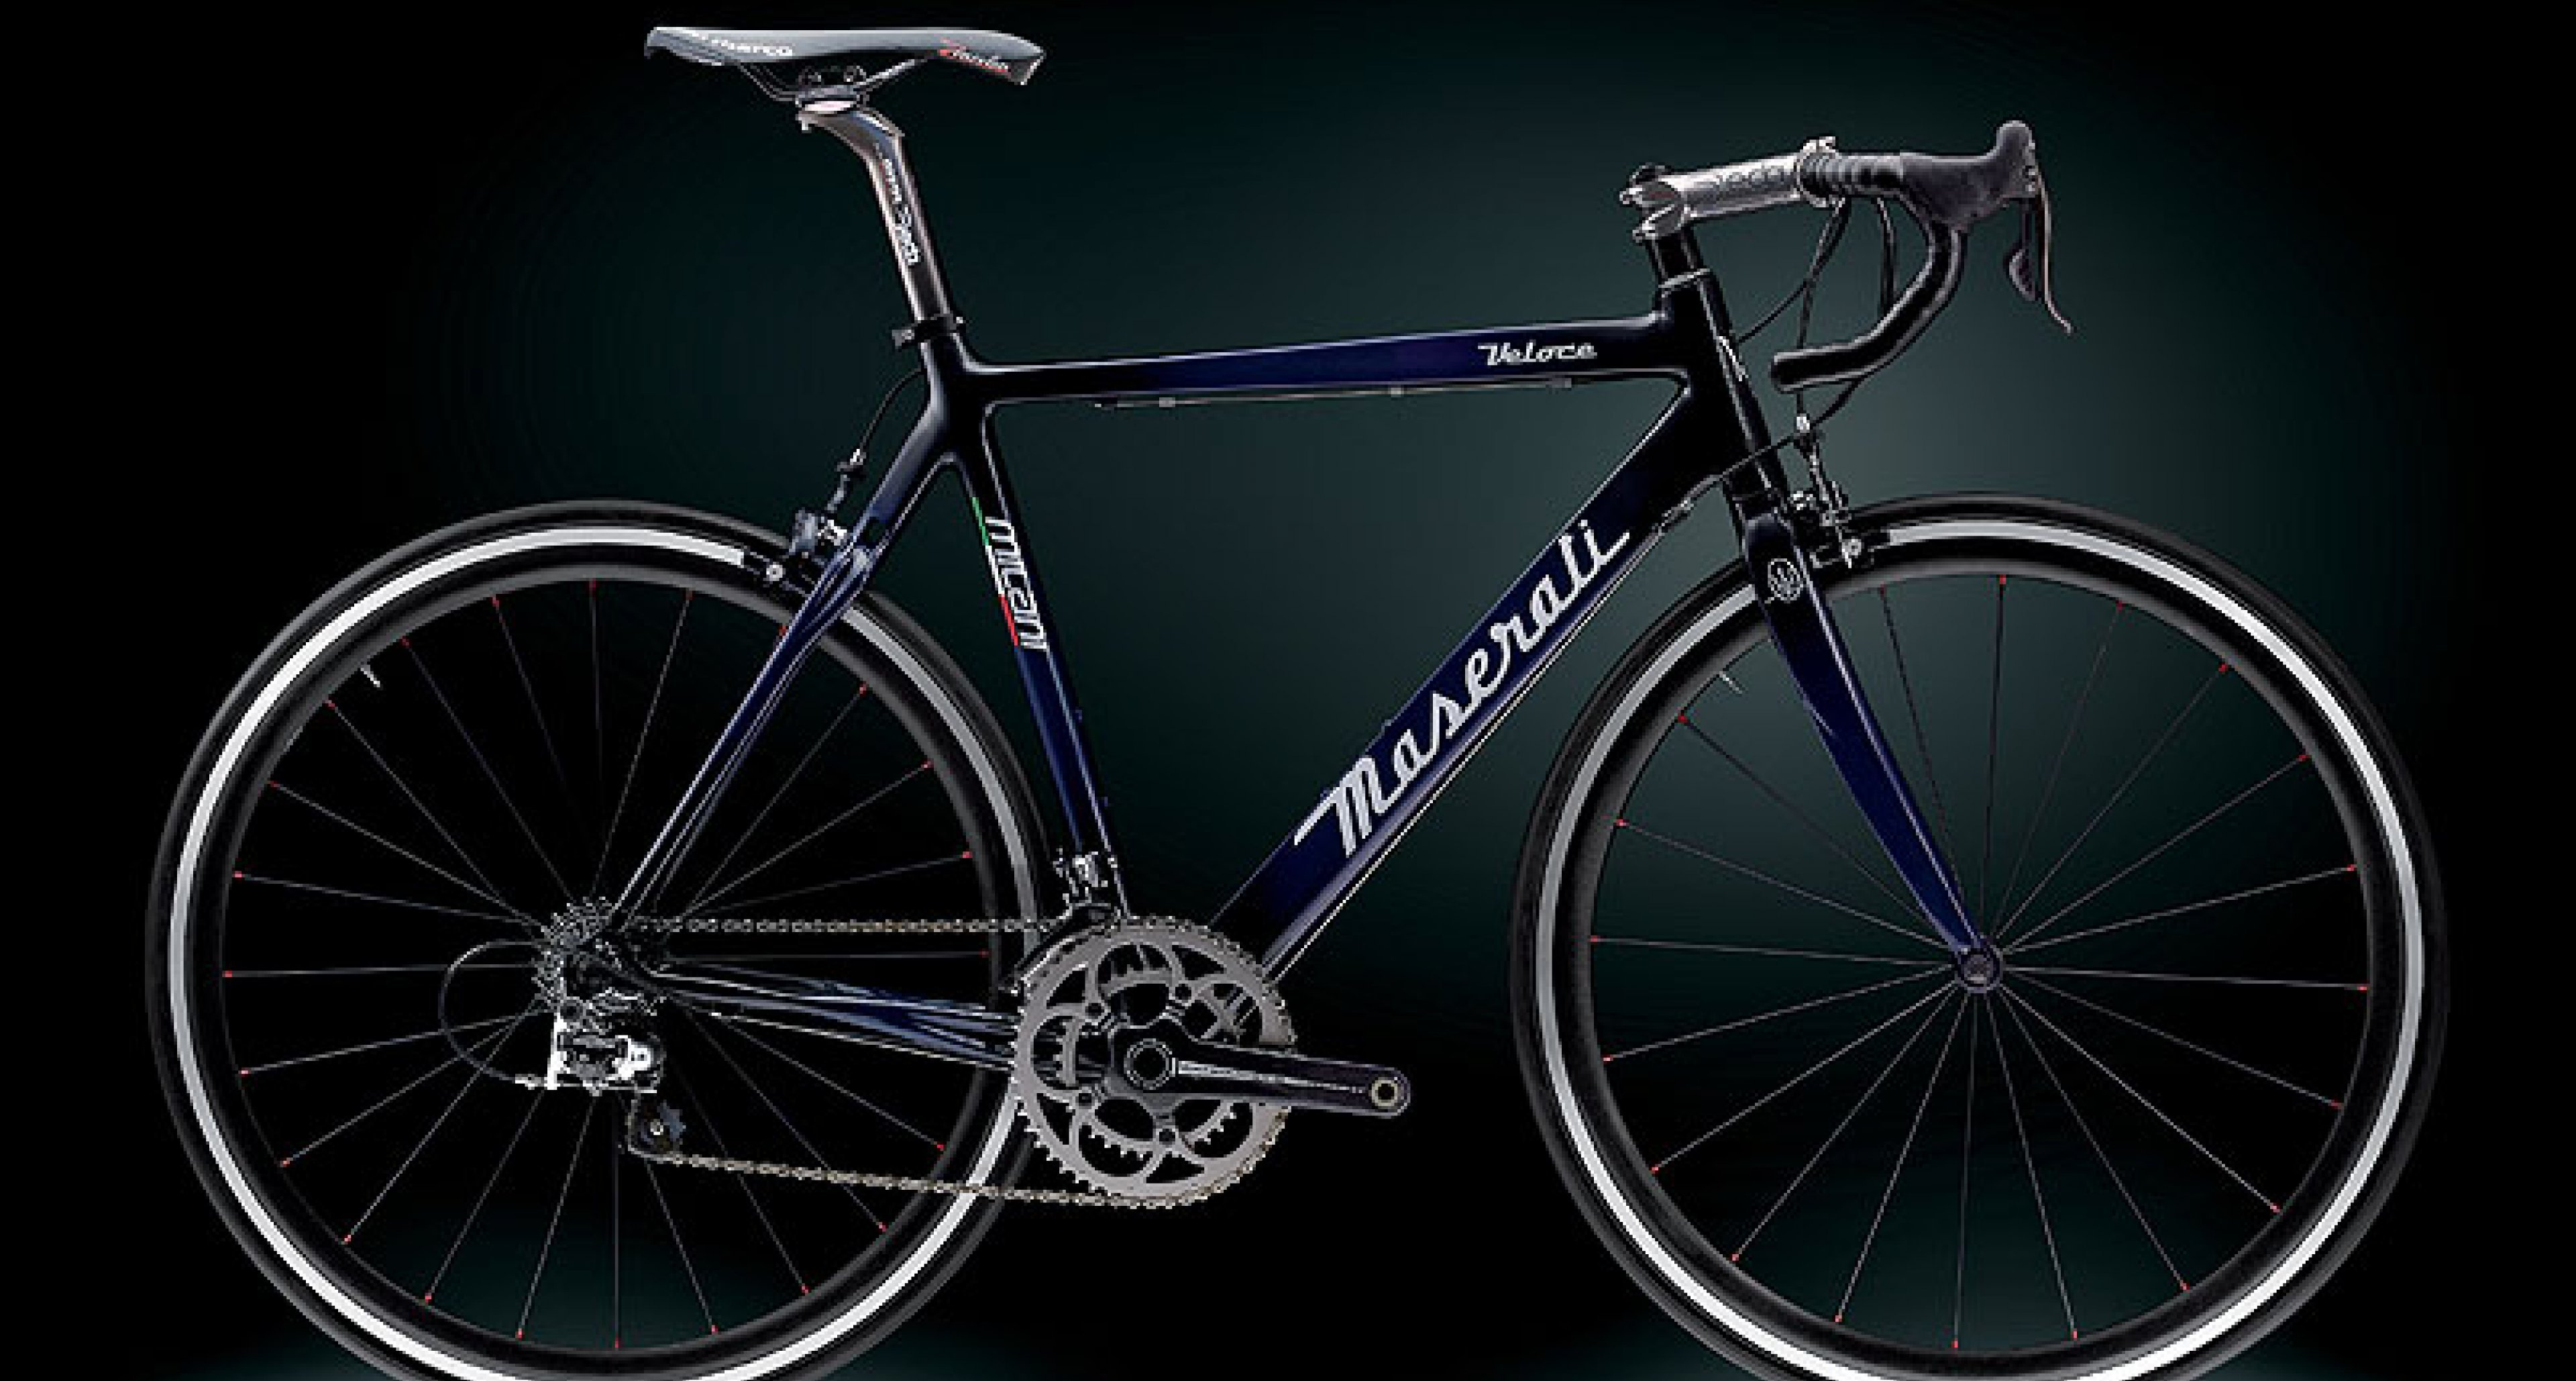 Milani for Maserati: Two New Carbonfibre Bicycles